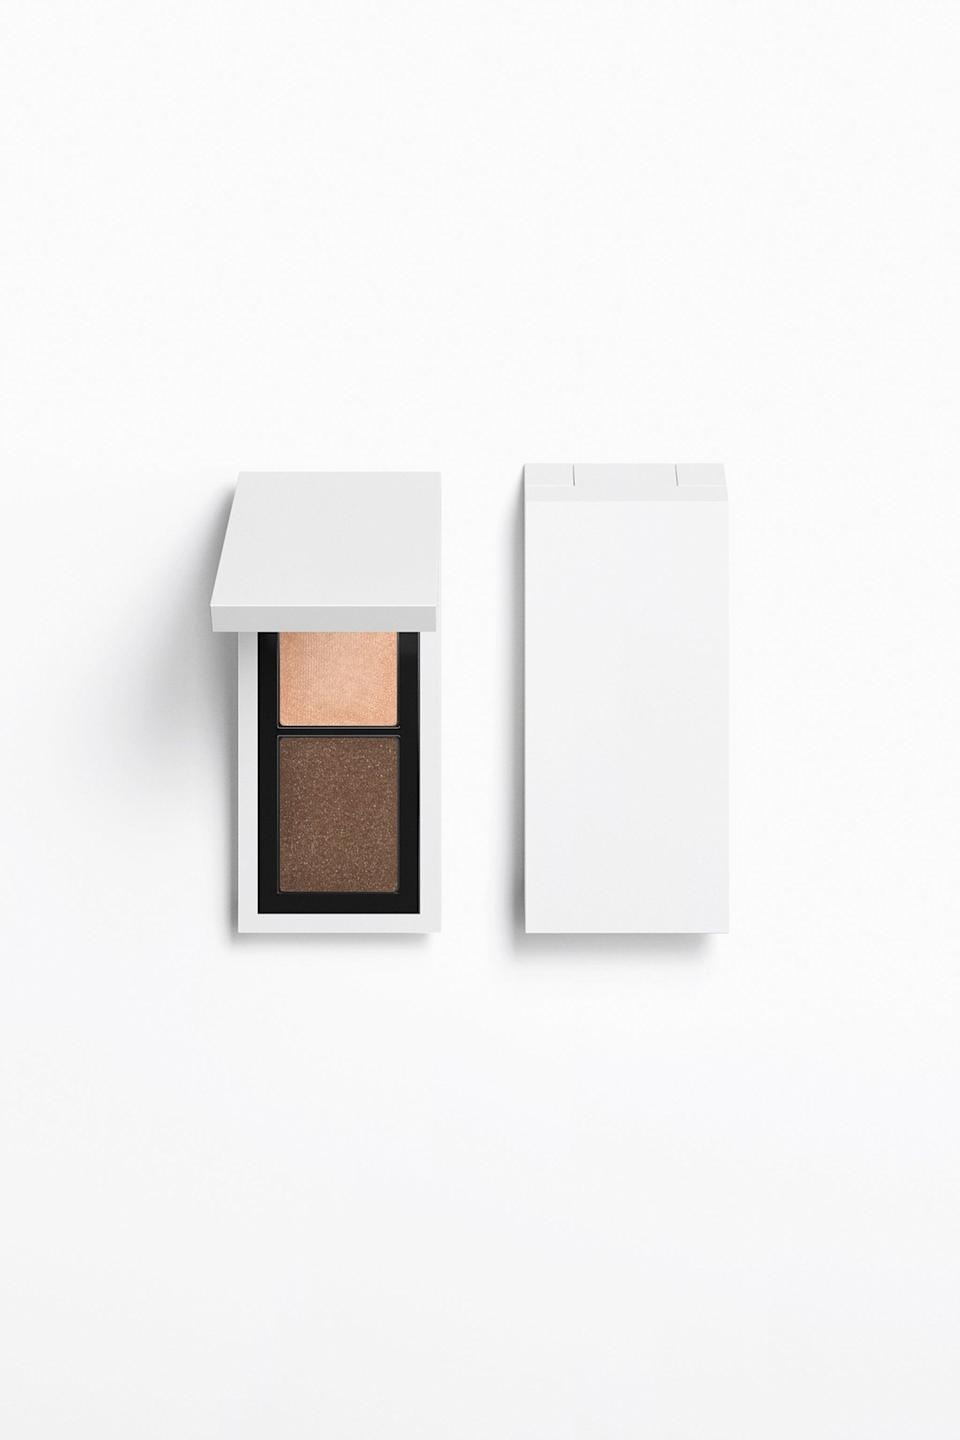 """<h3>Eye Color In 2 Duo Eyeshadow</h3><br>If you know you'll never touch half the colors in a six-pan palette, this smaller two-shade eyeshadow compact might be more your speed.<br><br><strong>Zara</strong> Eye Color In 2 Duo Eyeshadow - Refillable, $, available at <a href=""""https://go.skimresources.com/?id=30283X879131&url=https%3A%2F%2Fwww.zara.com%2Fus%2Fen%2Feye-color-in-2-duo-eyeshadow---refillable-p24130700.html"""" rel=""""nofollow noopener"""" target=""""_blank"""" data-ylk=""""slk:Zara"""" class=""""link rapid-noclick-resp"""">Zara</a>"""